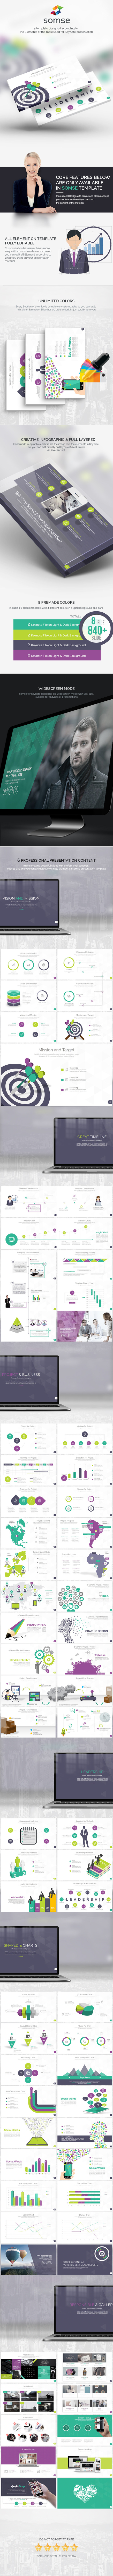 GraphicRiver Somse All in One Keynote Template 8893880